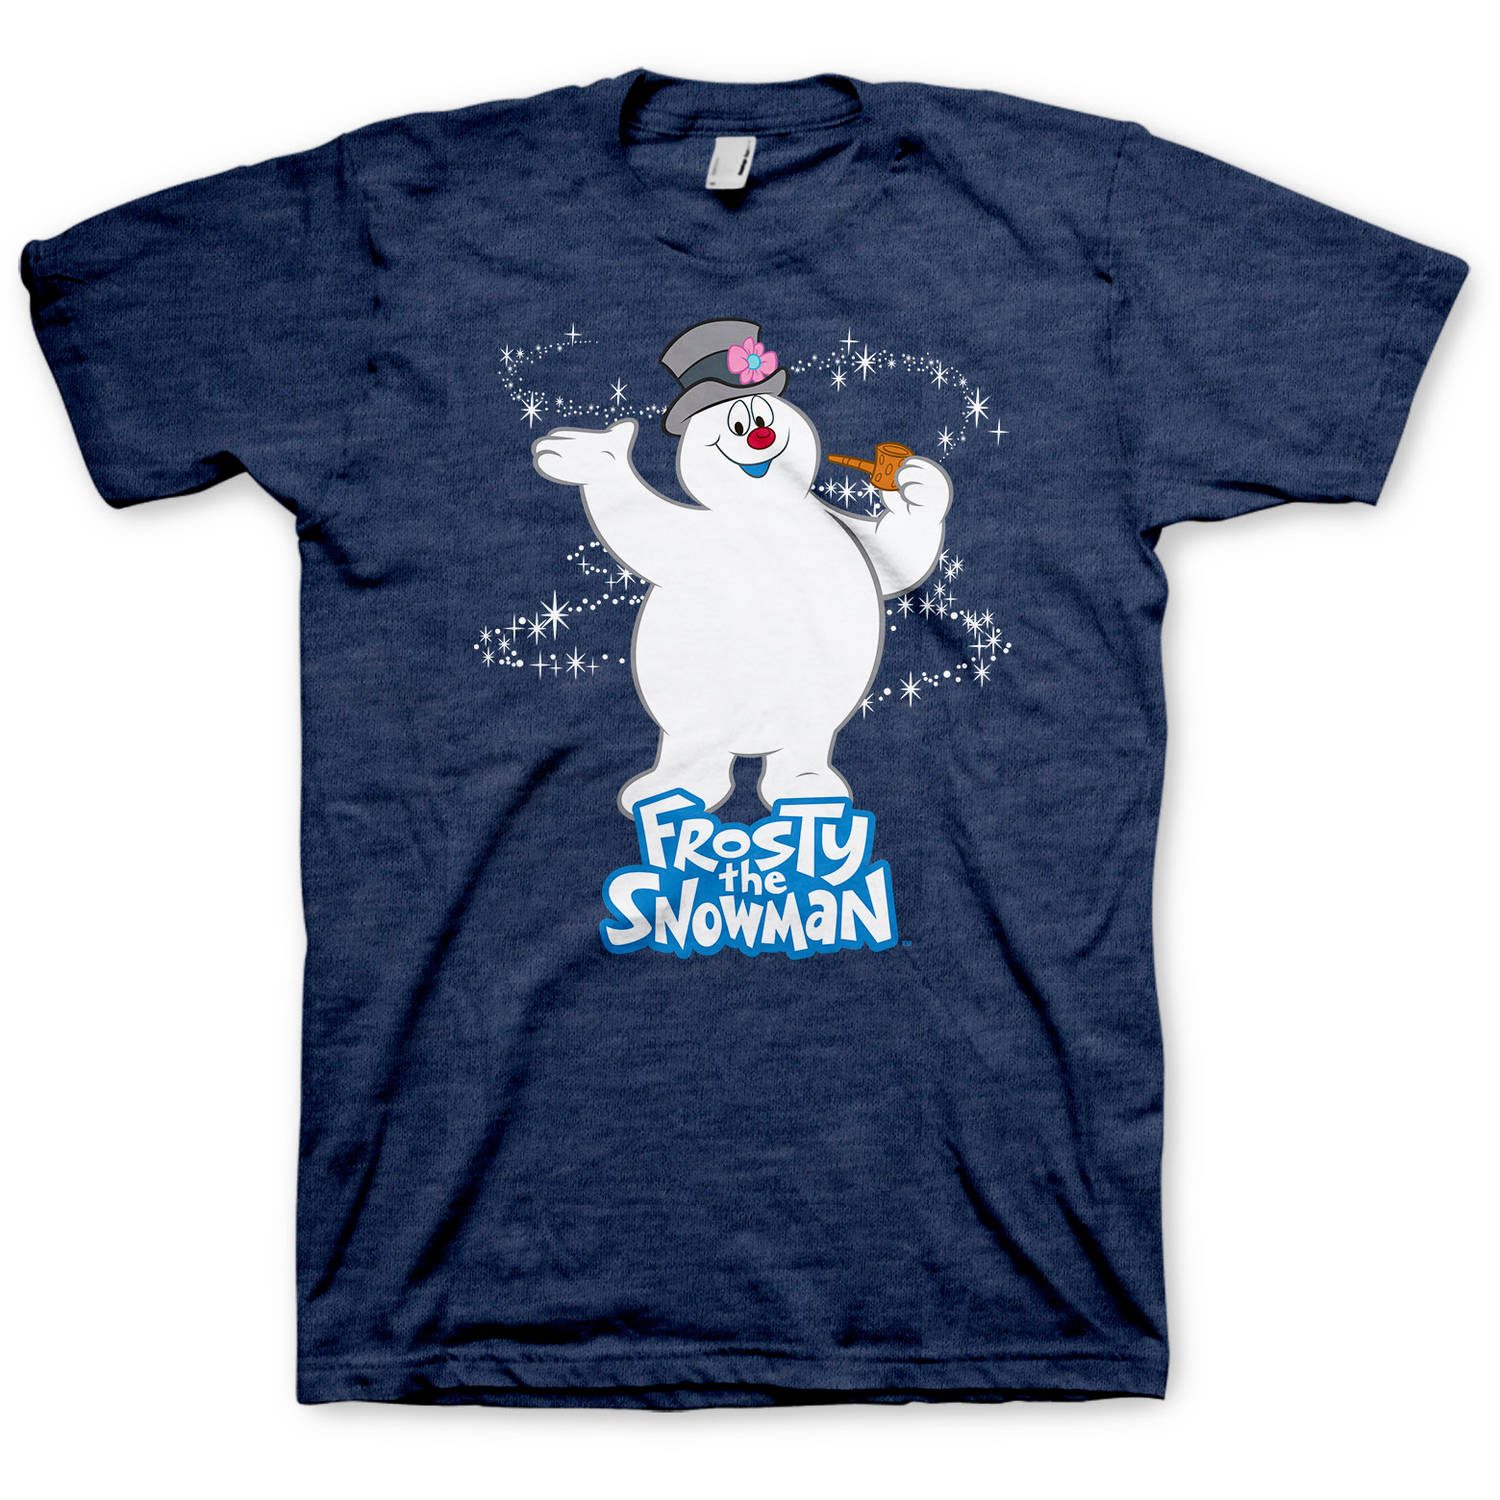 Frosty the Snowman Big Men's Graphic Tee, 2XL